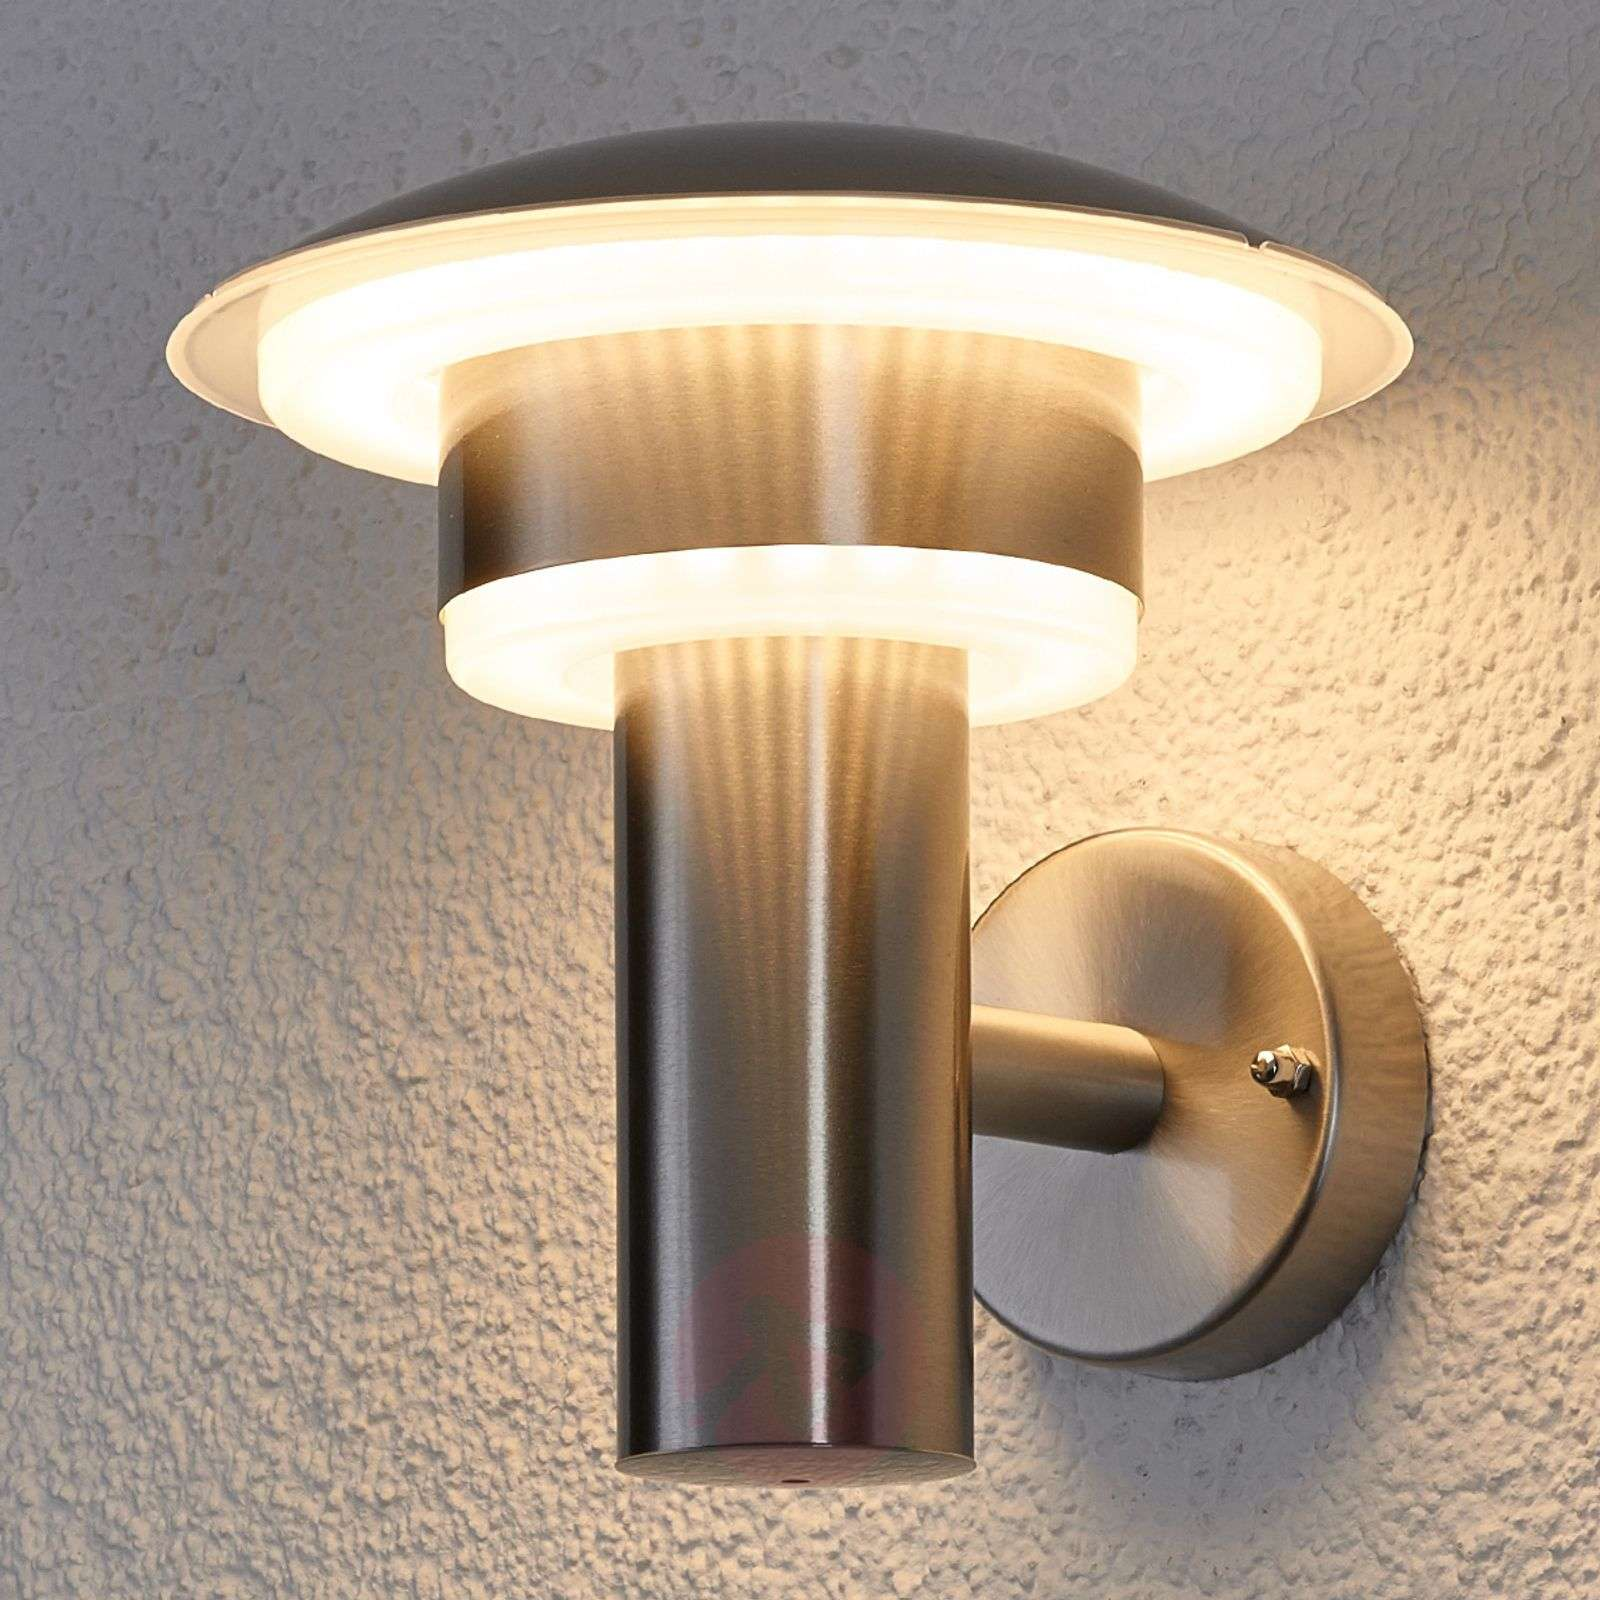 Led stainless steel outdoor wall light lillie Fixture exterieur led